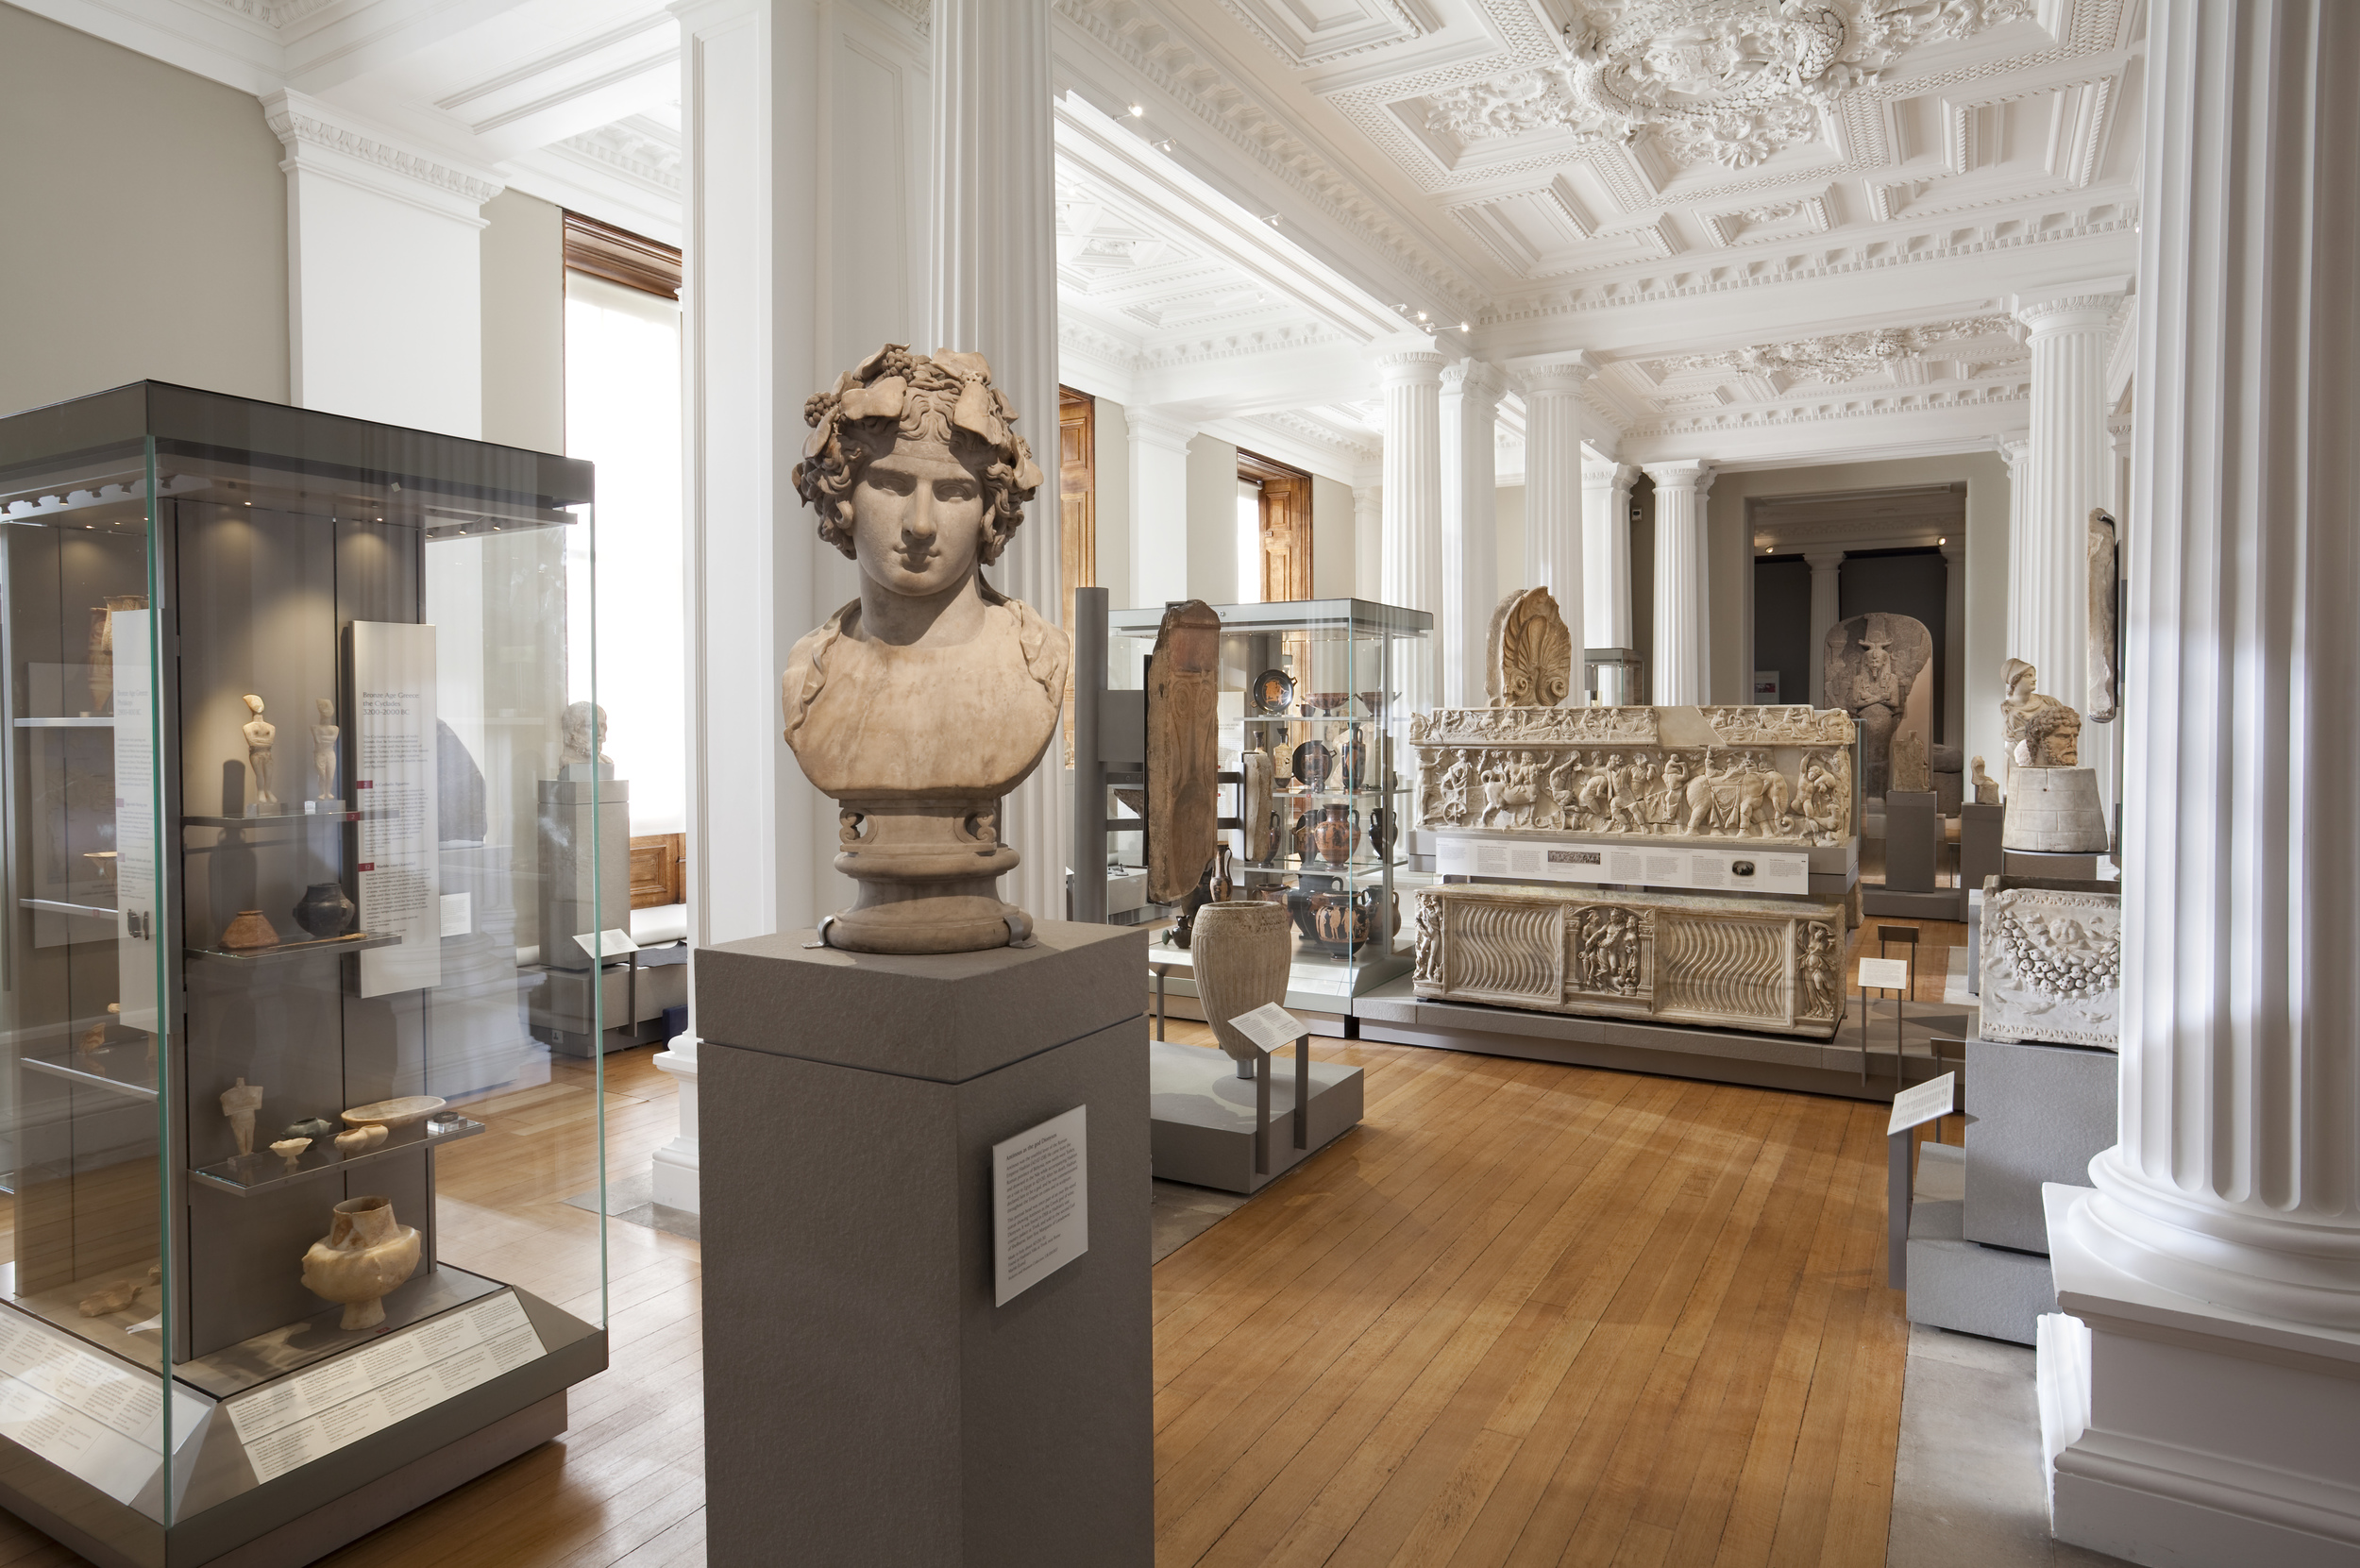 Greek & Roman Room, Fitzwilliam Museum, Cambridge